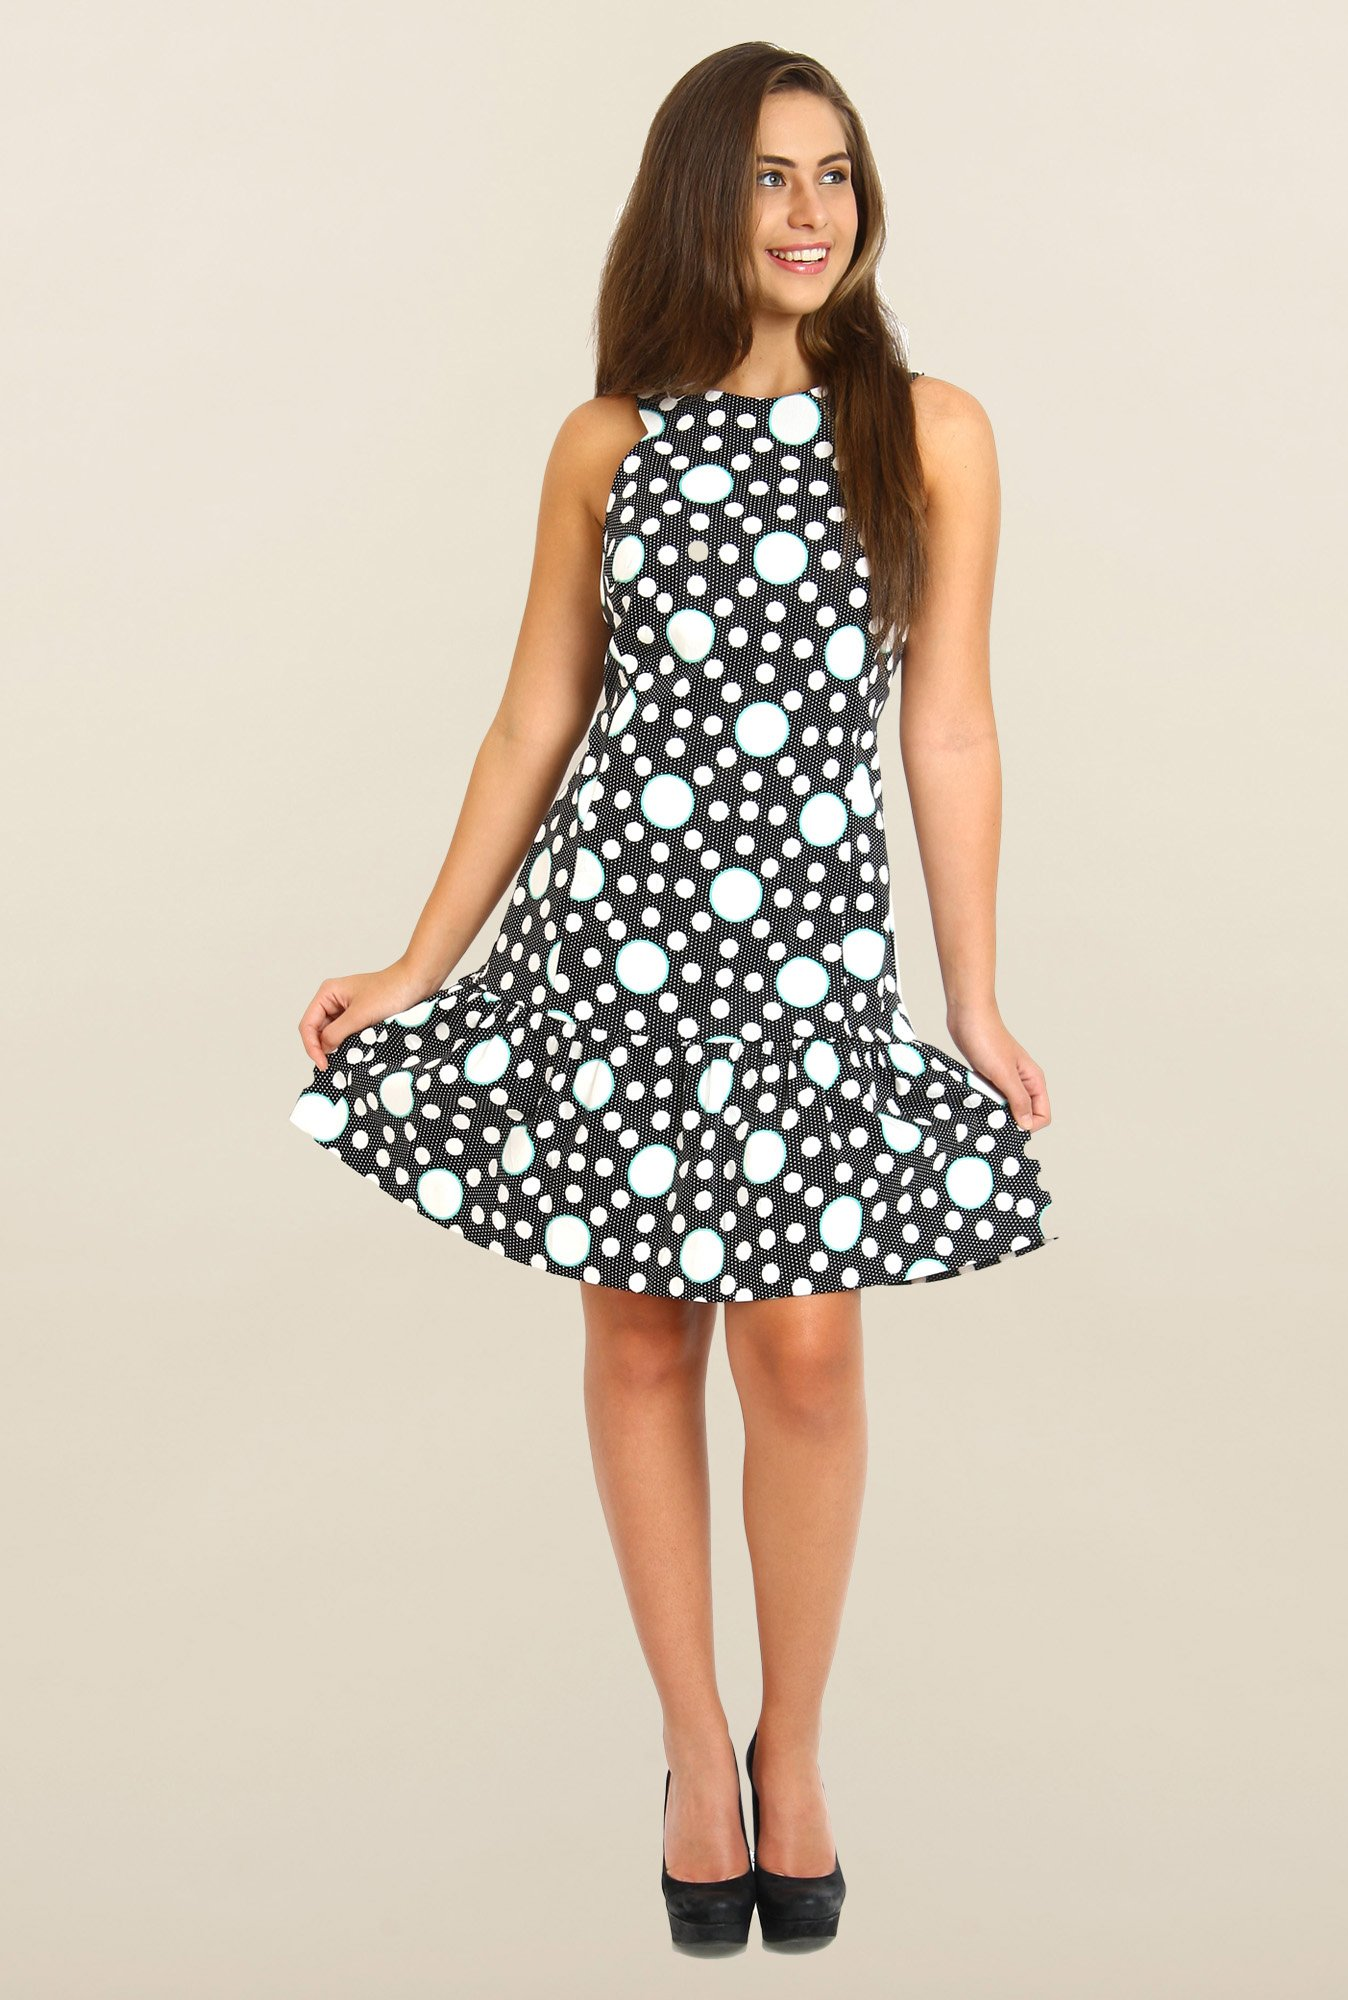 Avirate Black And White Printed Shift Dress